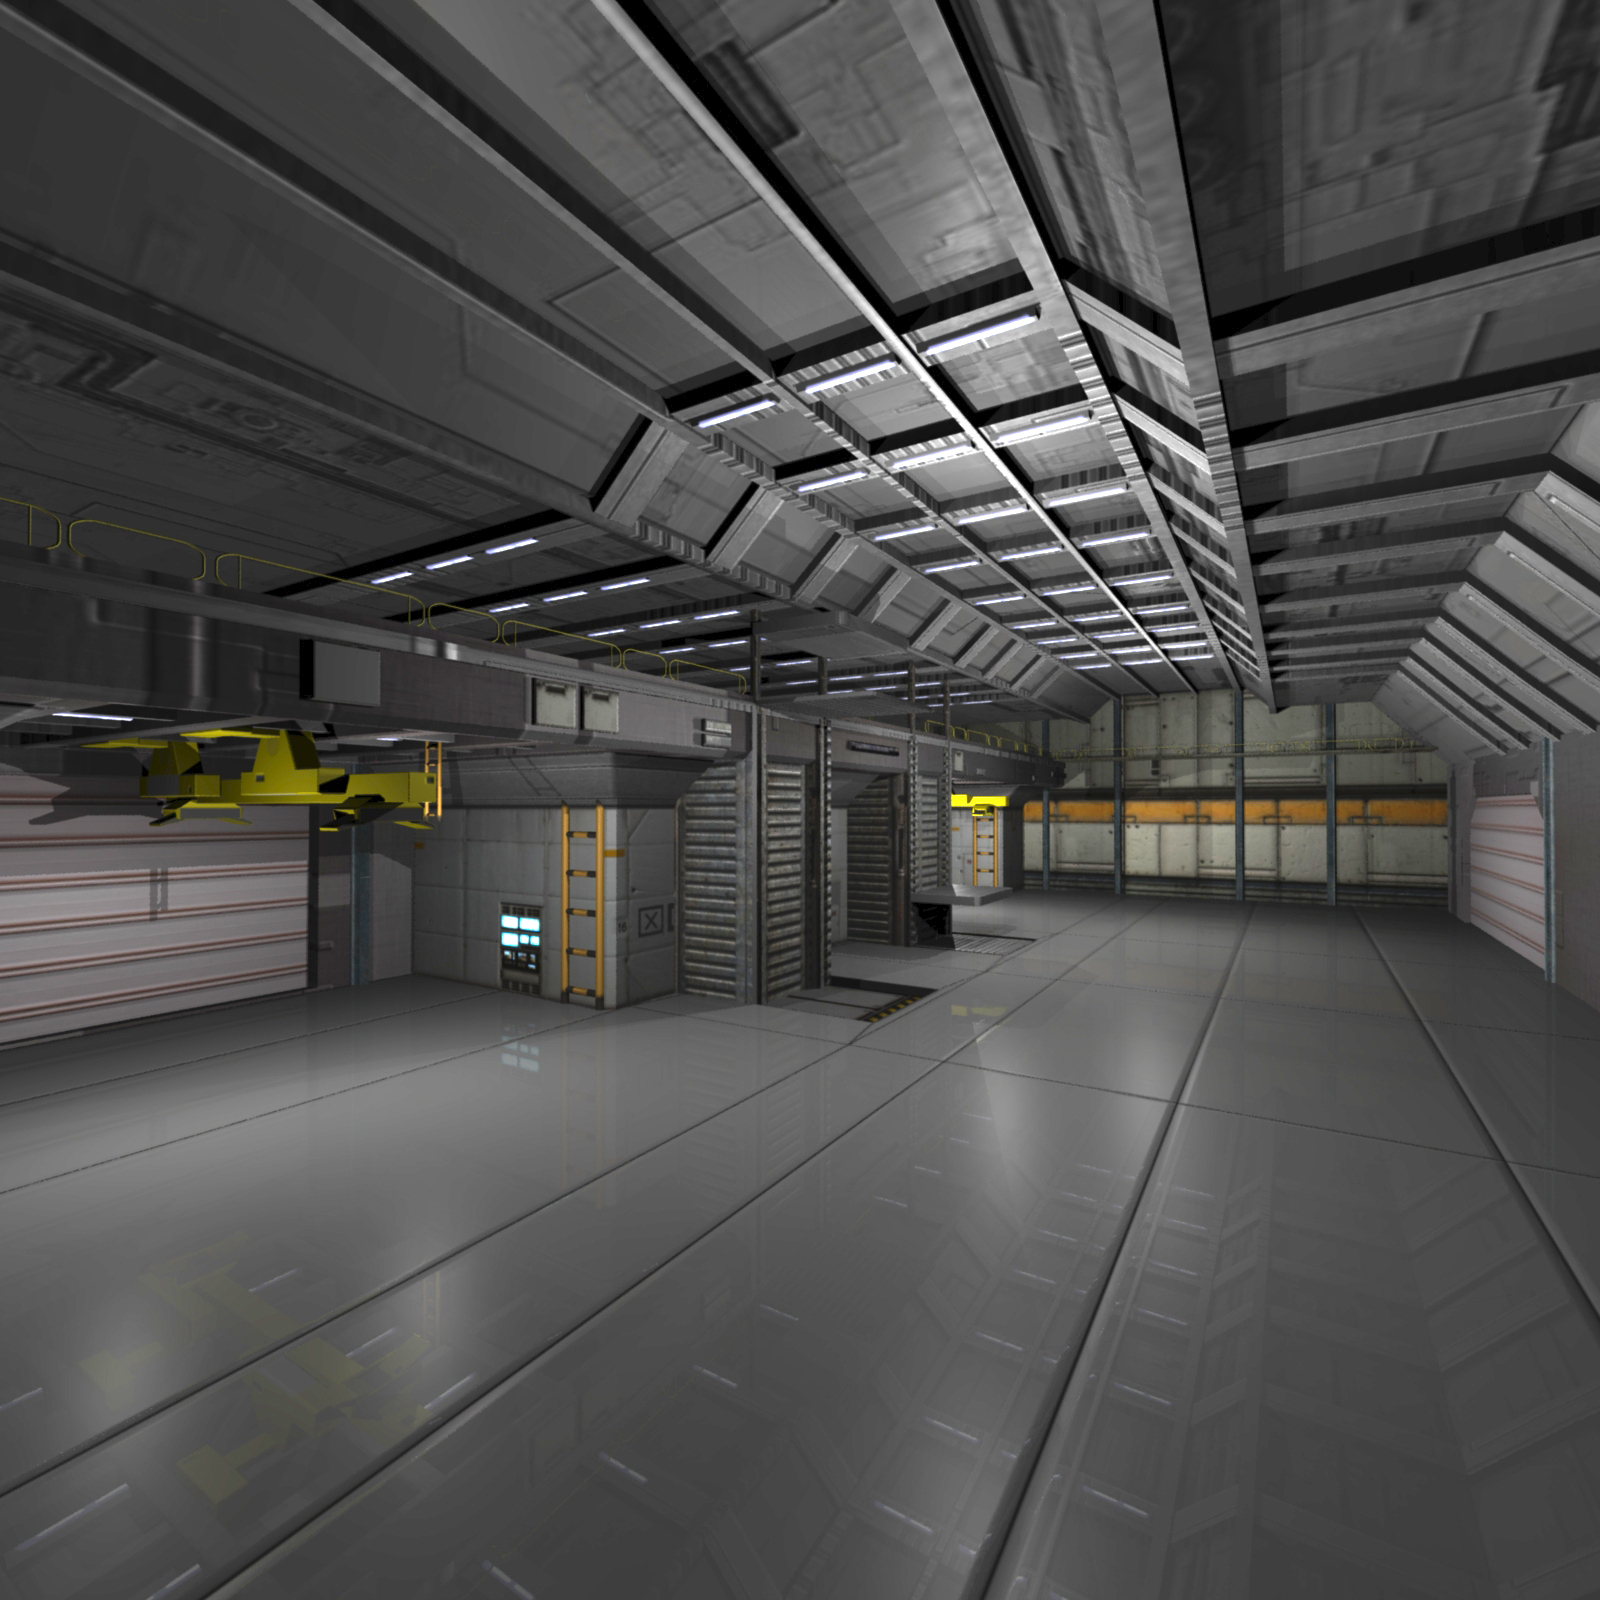 Shuttle Bay FBX by shawnaloroc